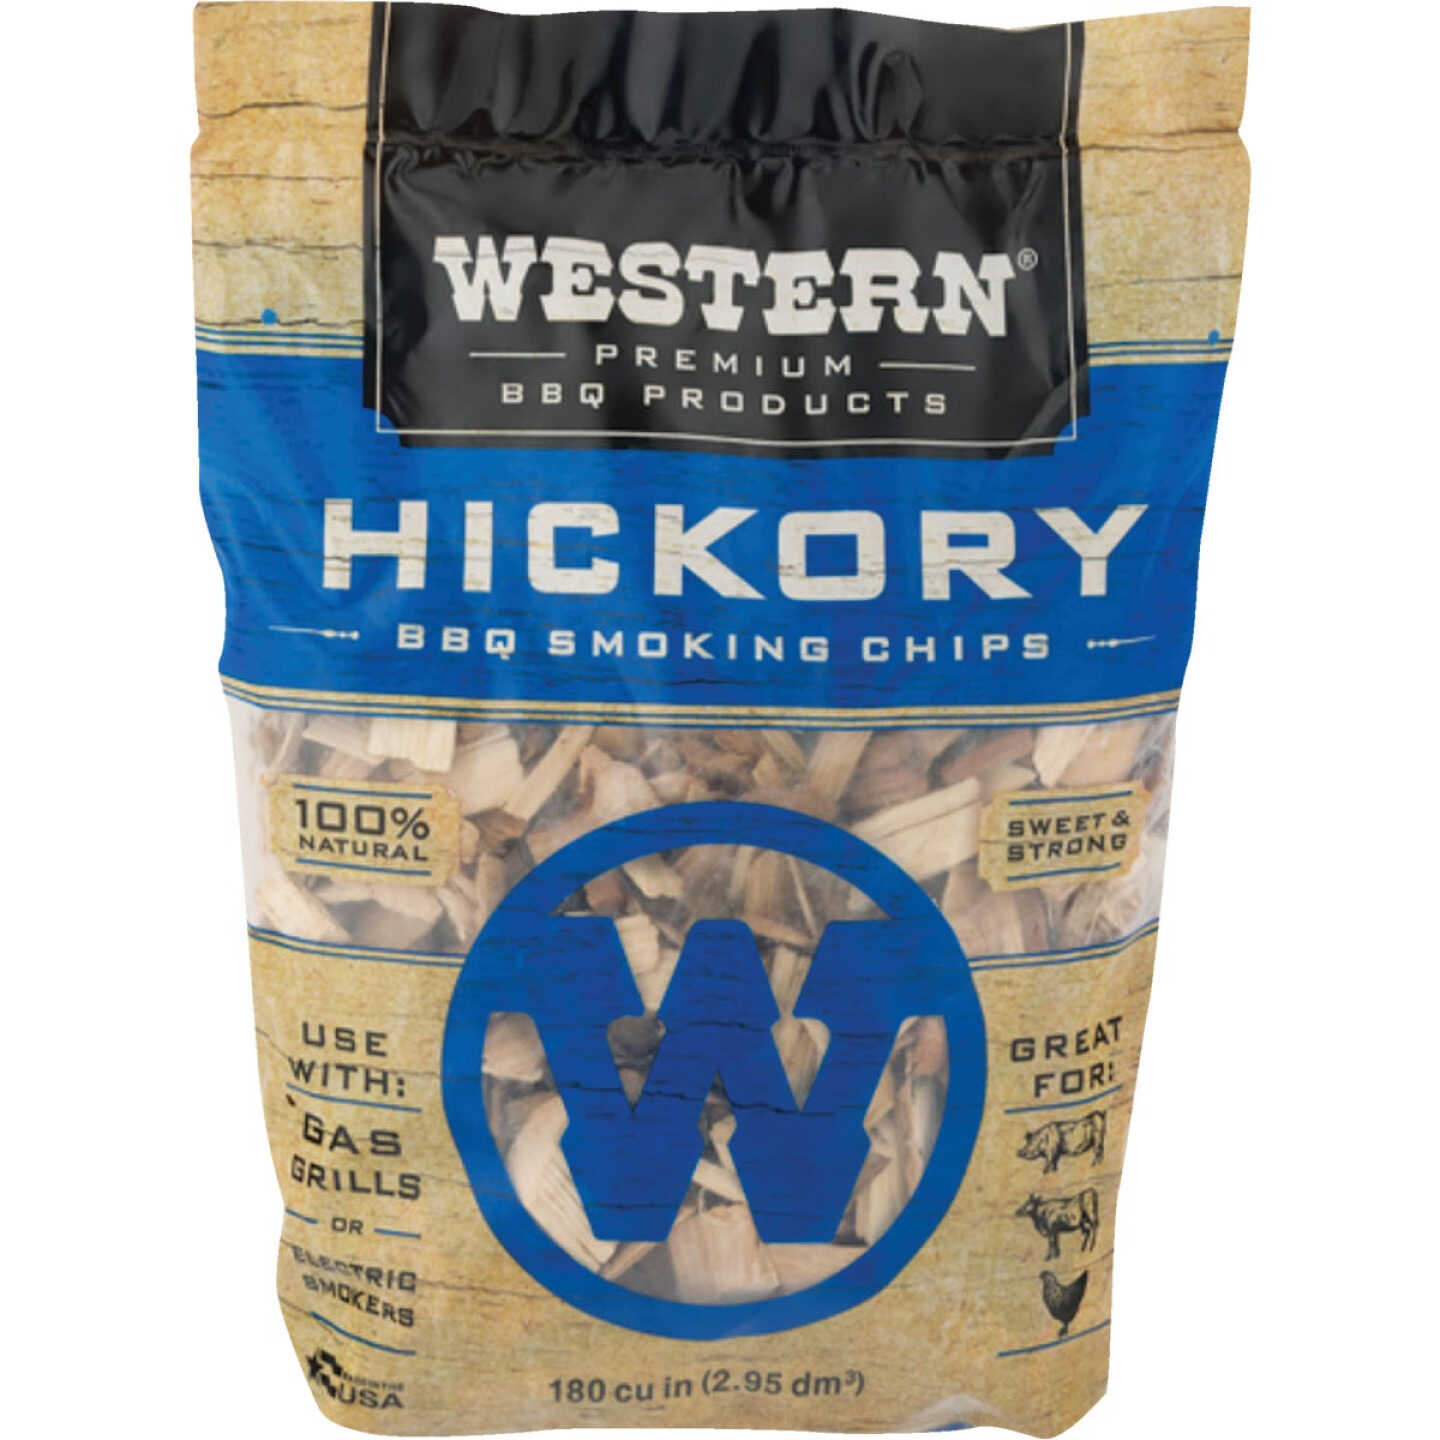 Western 180 Cu. In. Hickory Wood Smoking Chips Image 1